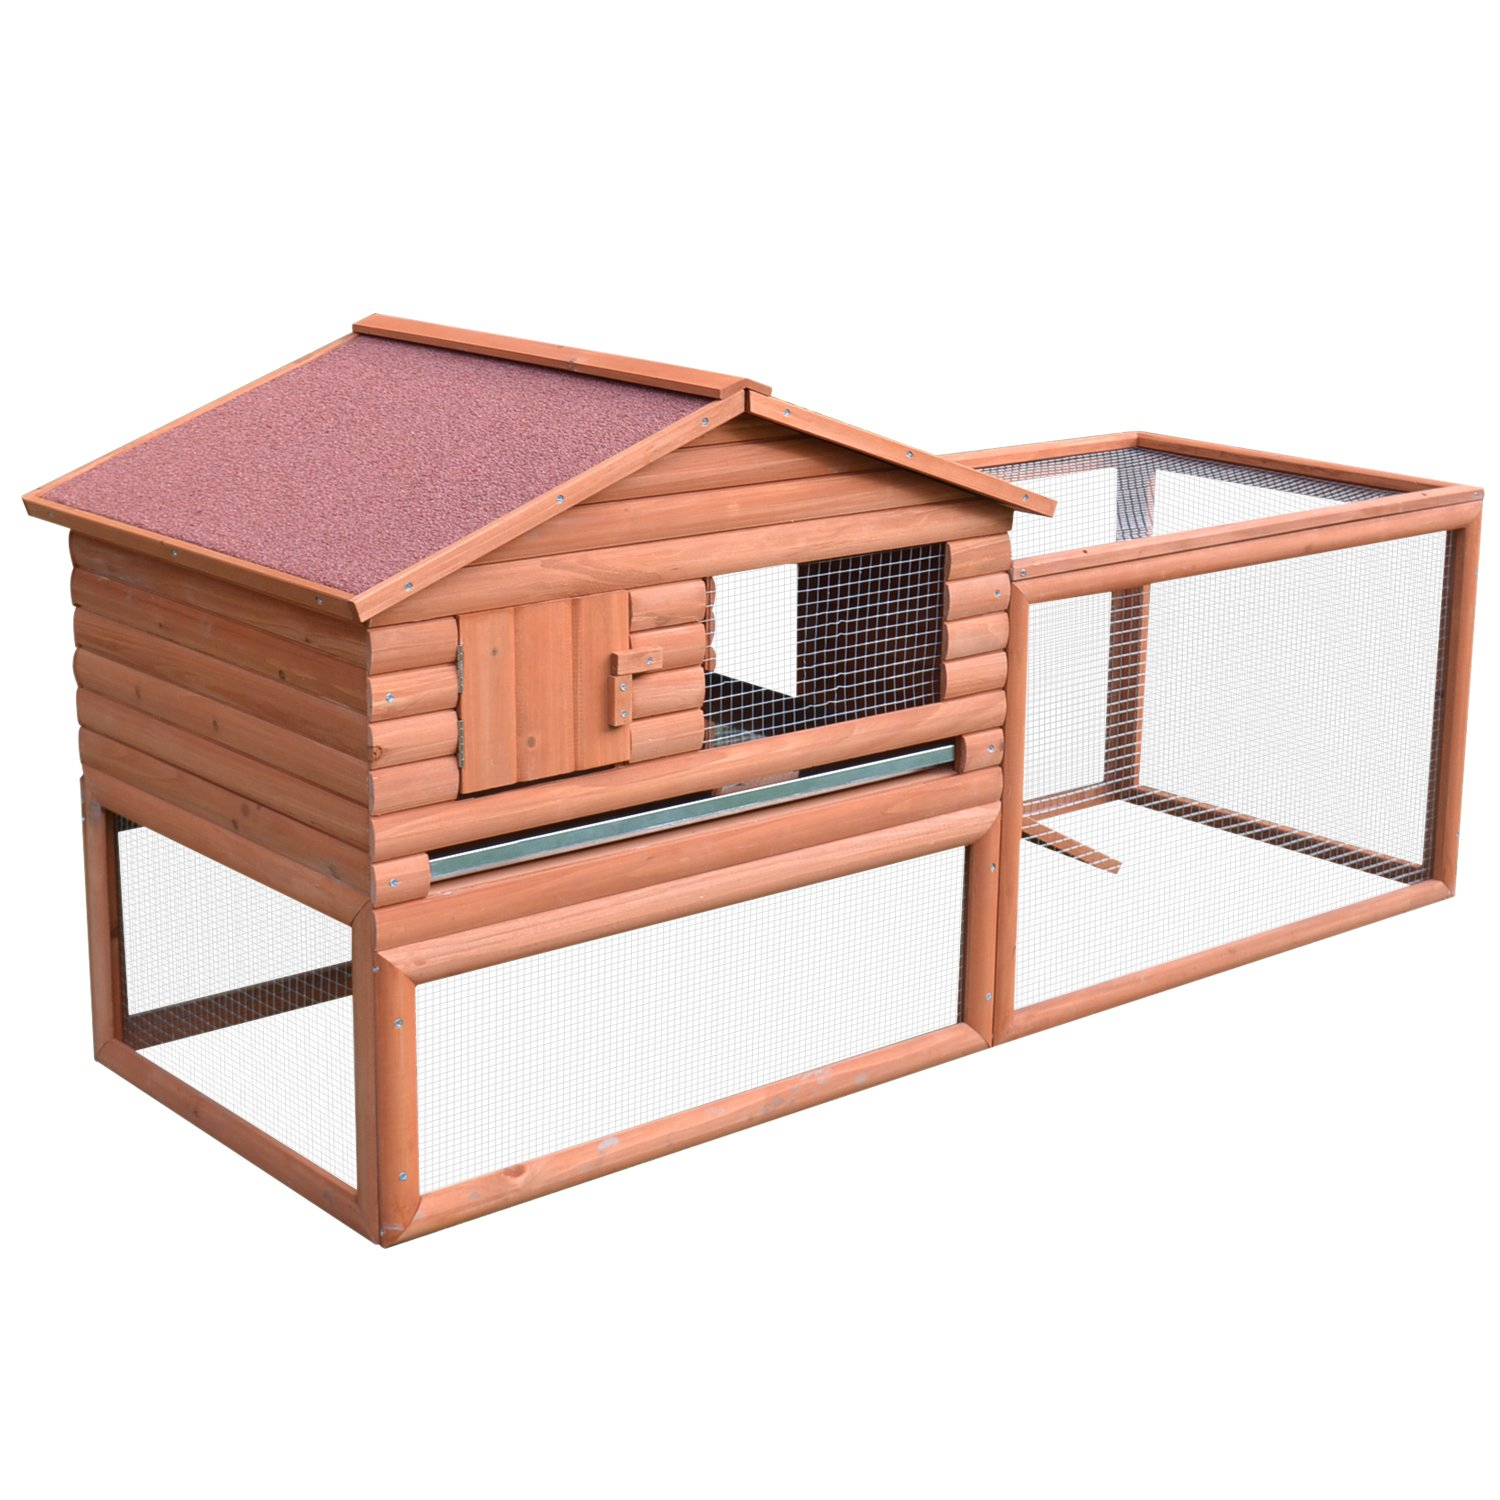 PawHut 62'' Large Outdoor Rabbit Cage Small Animal Hutch Playpen With Run by PawHut